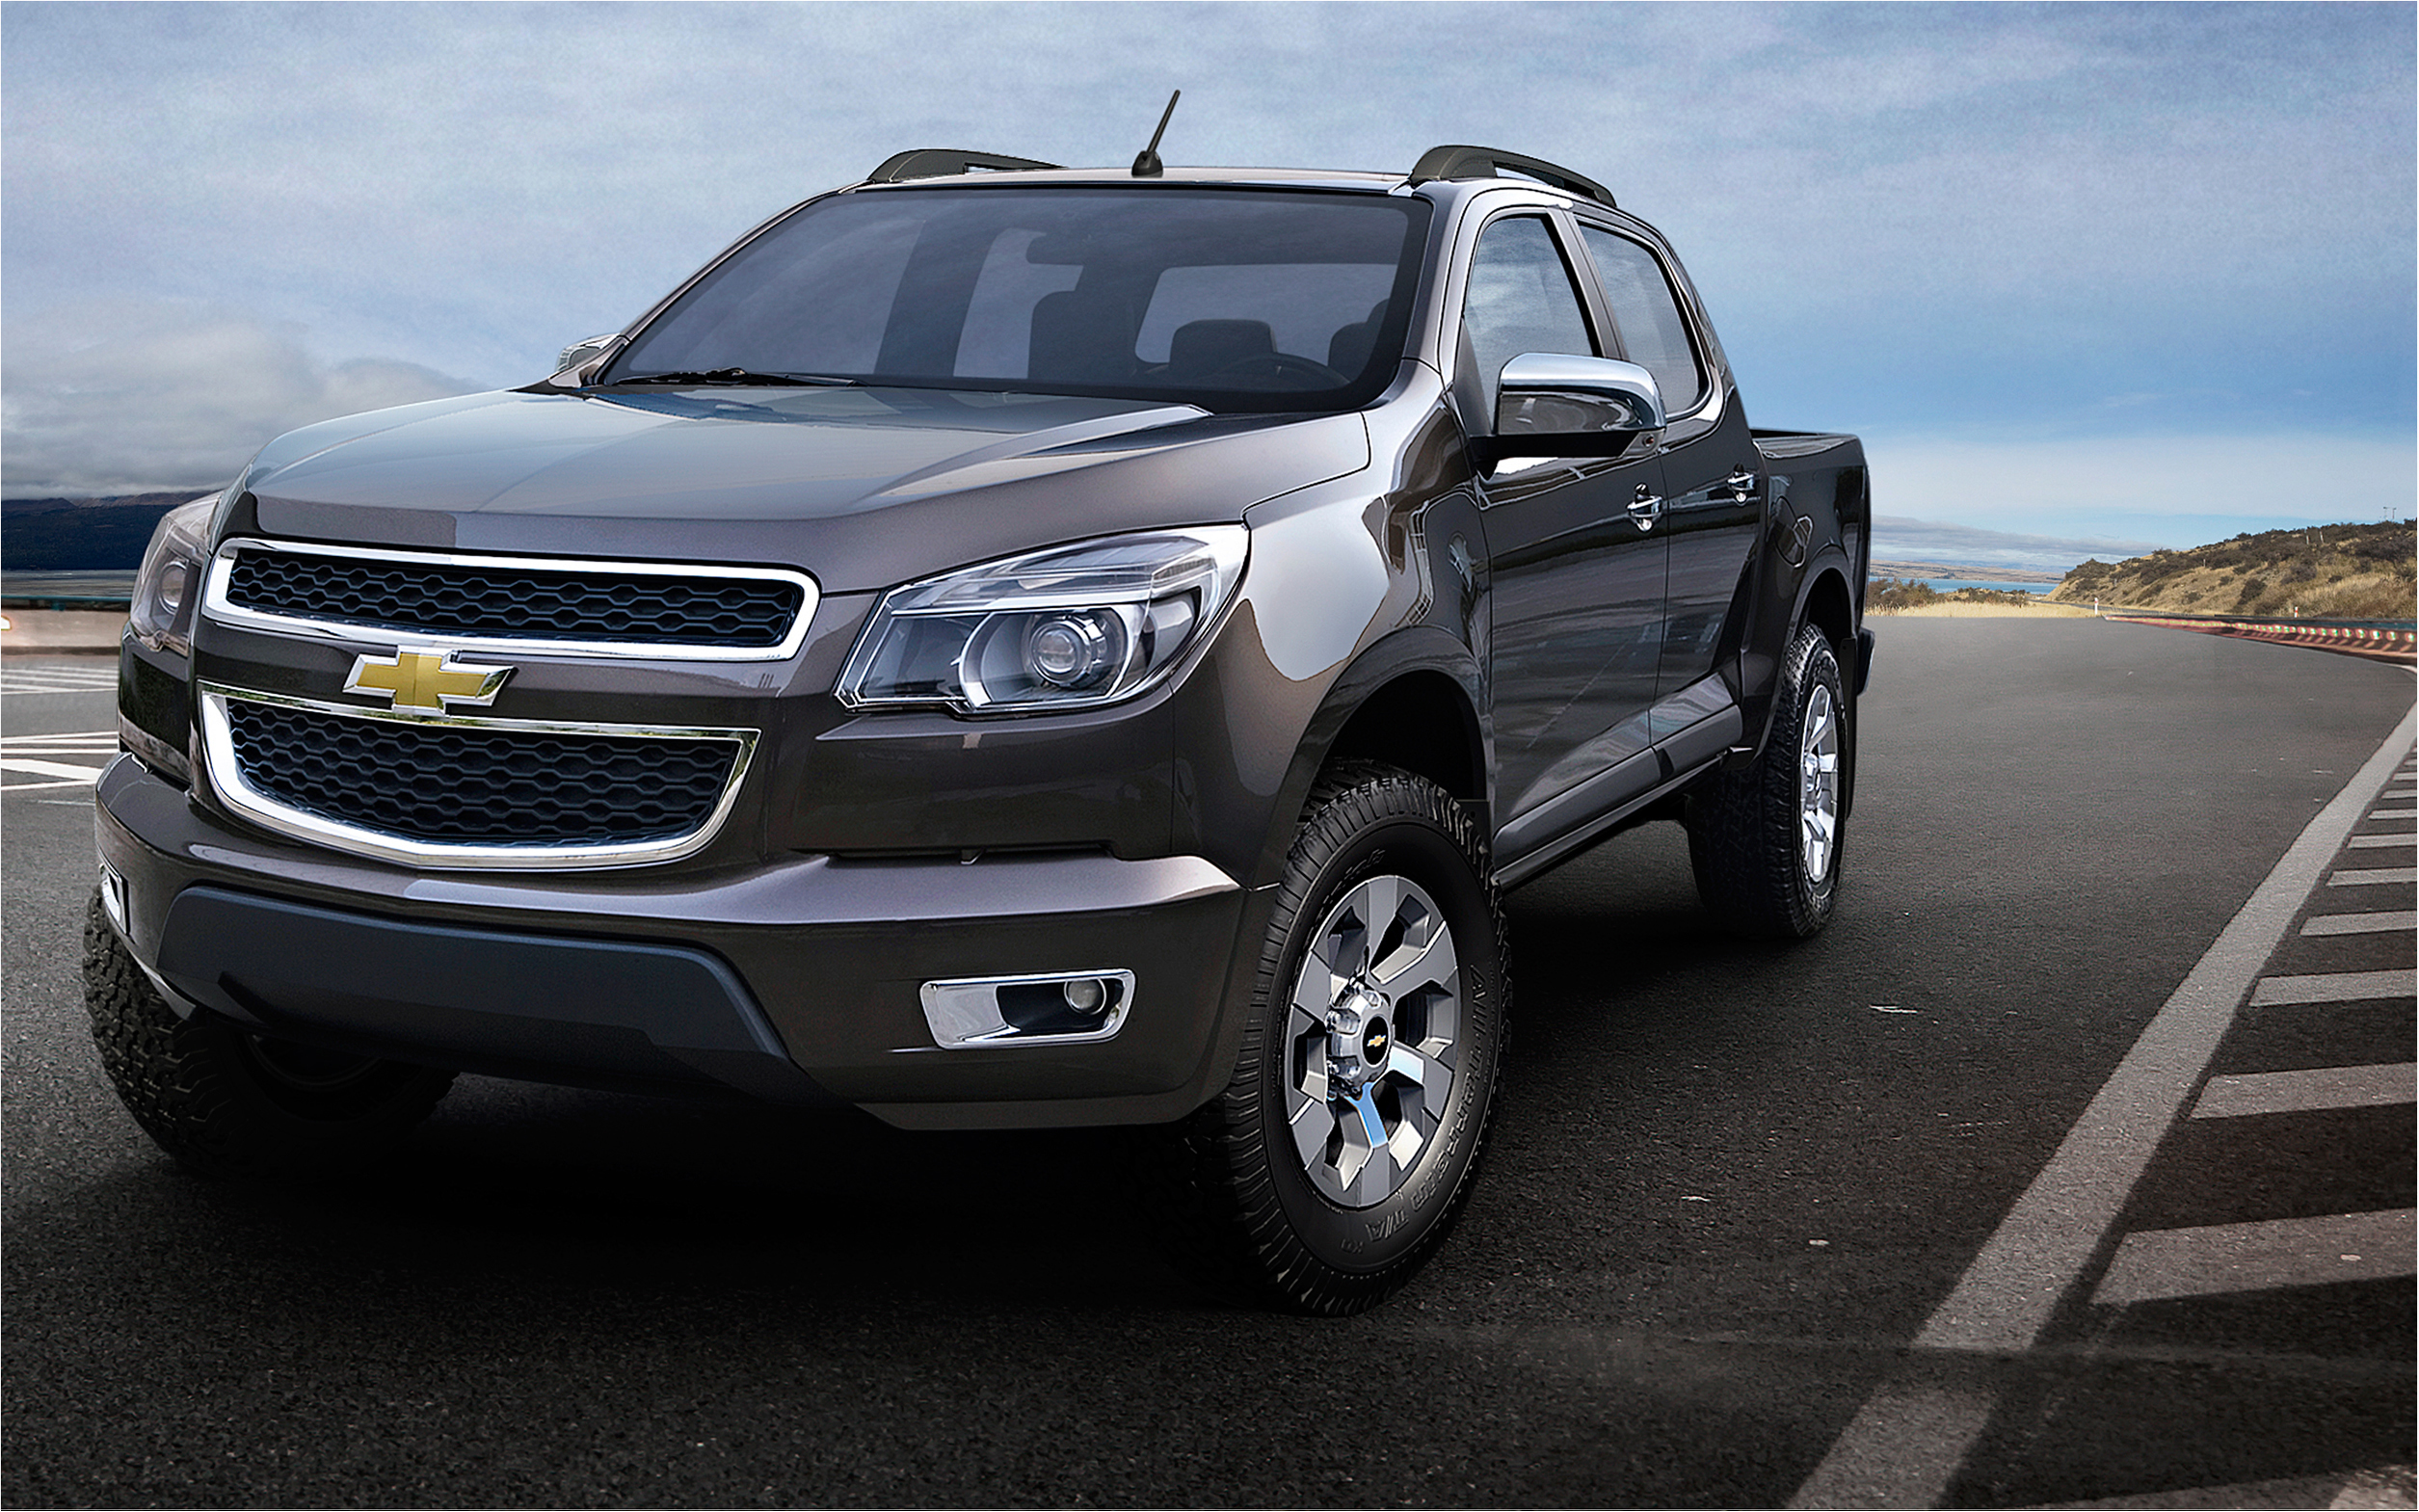 Chevrolet Colorado photo 09